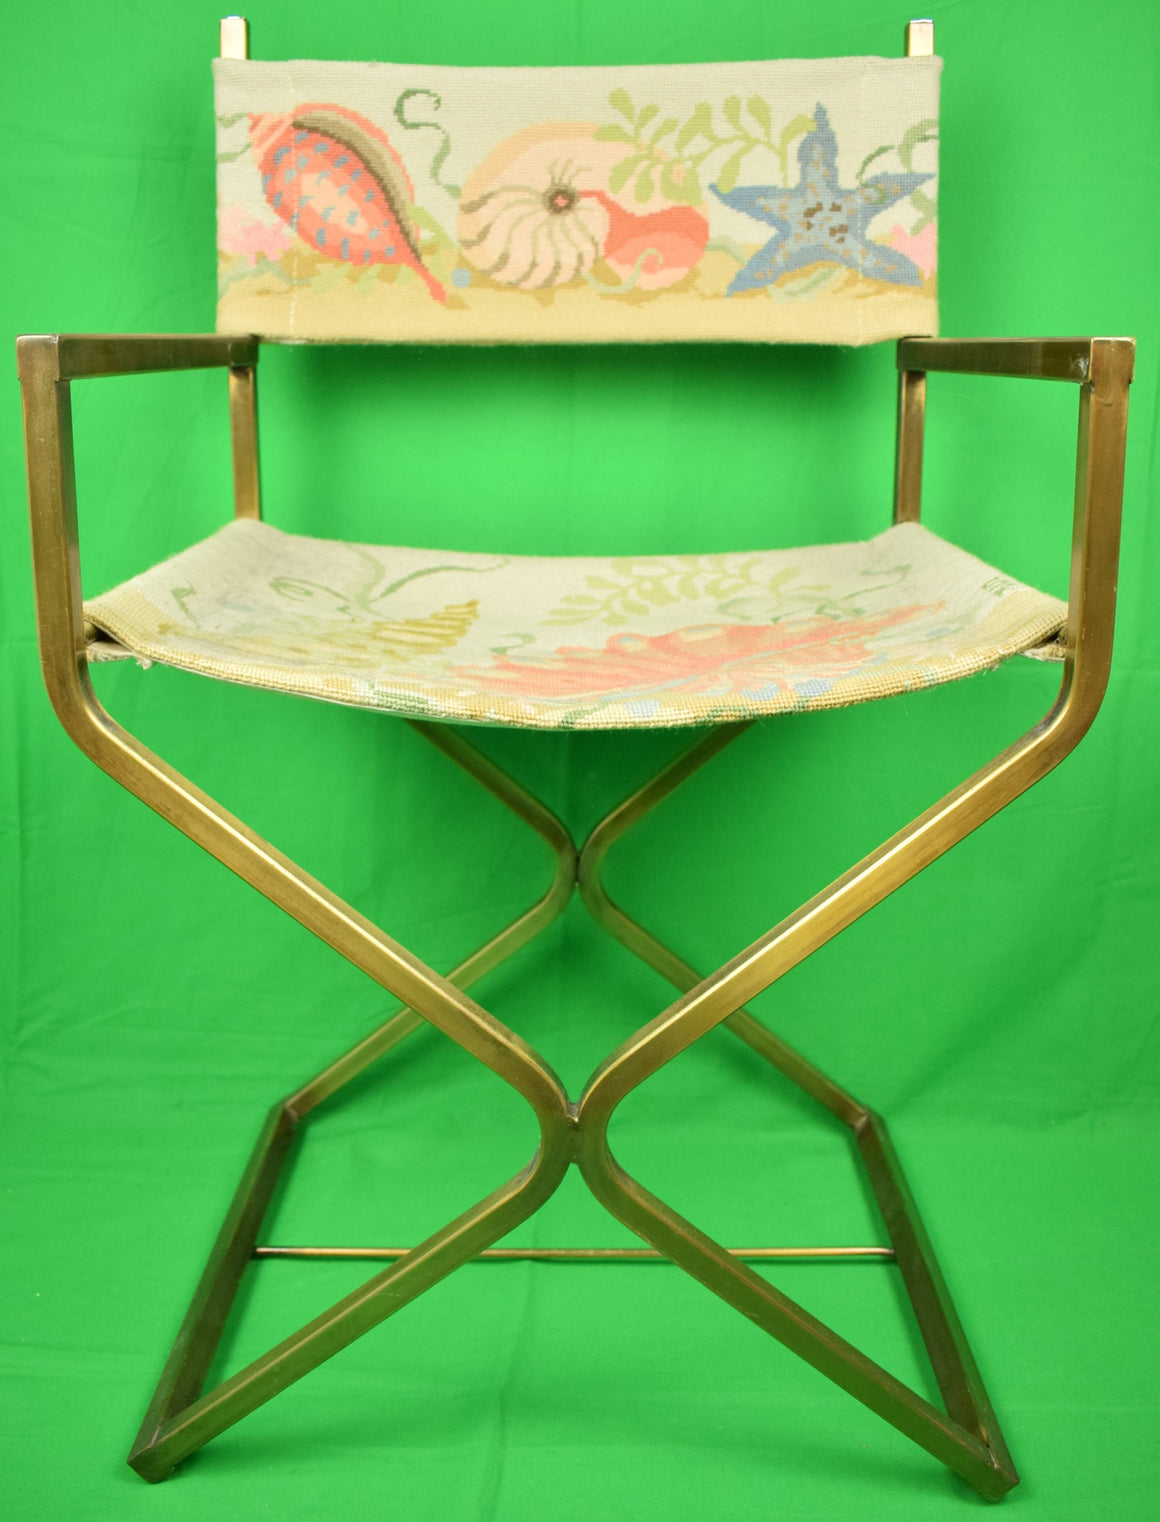 Palm Beach Seashells c1960's Hand-Needlepoint Director's Chair